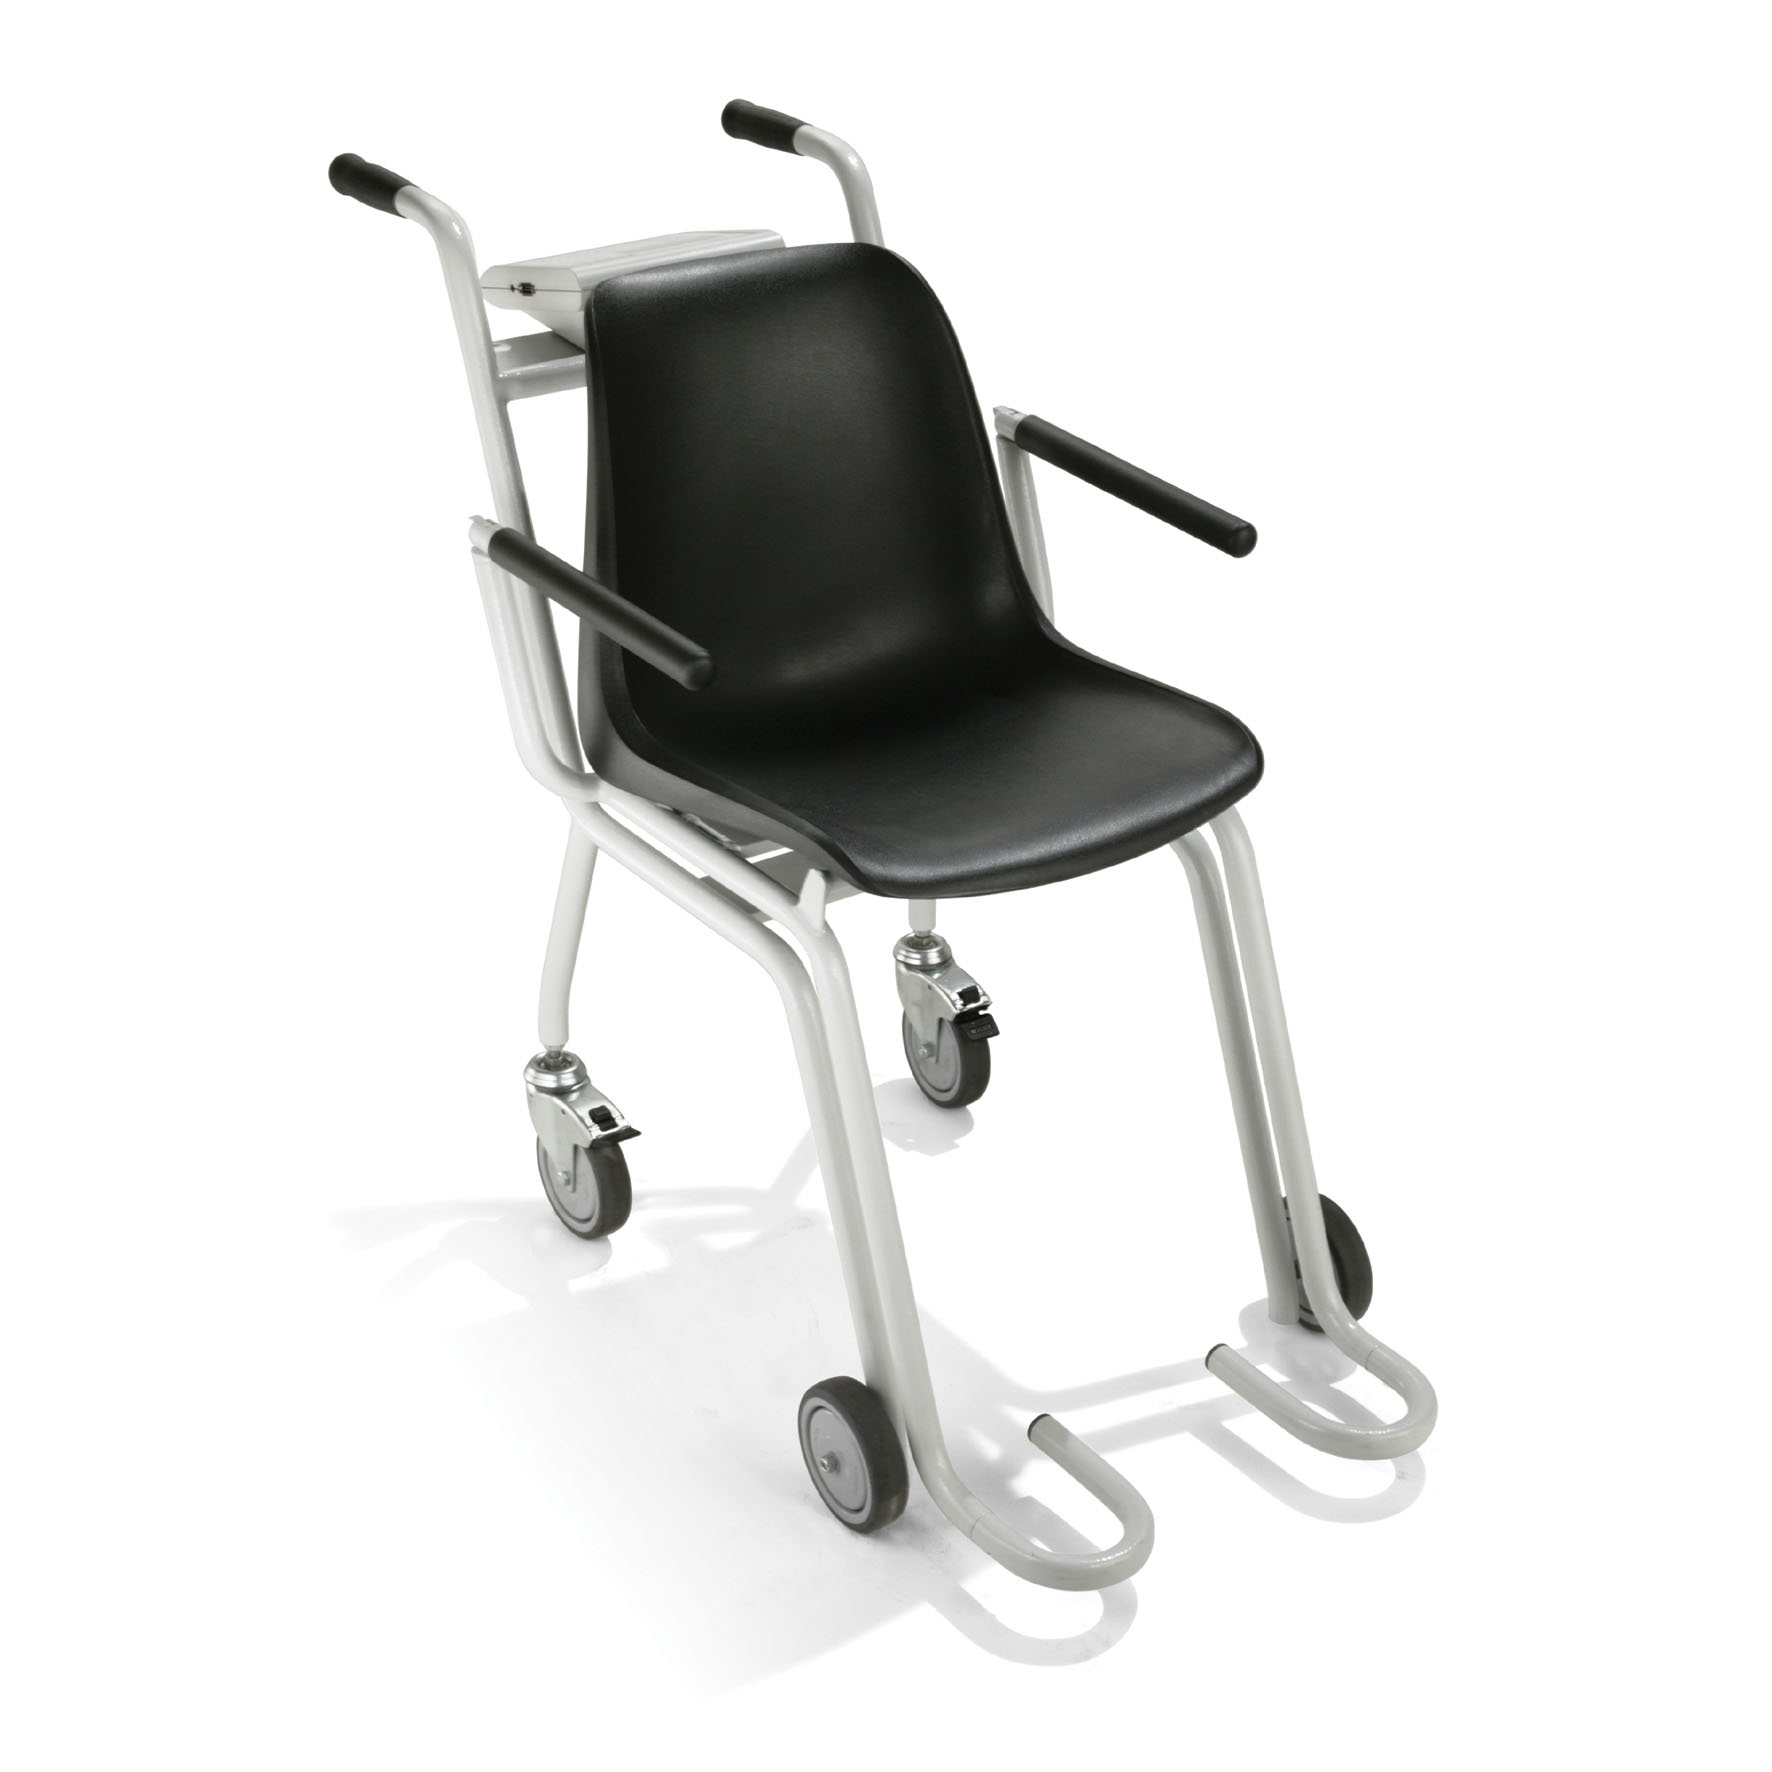 DUPONT FAUTEUIL DE PESEE TRANSLEST